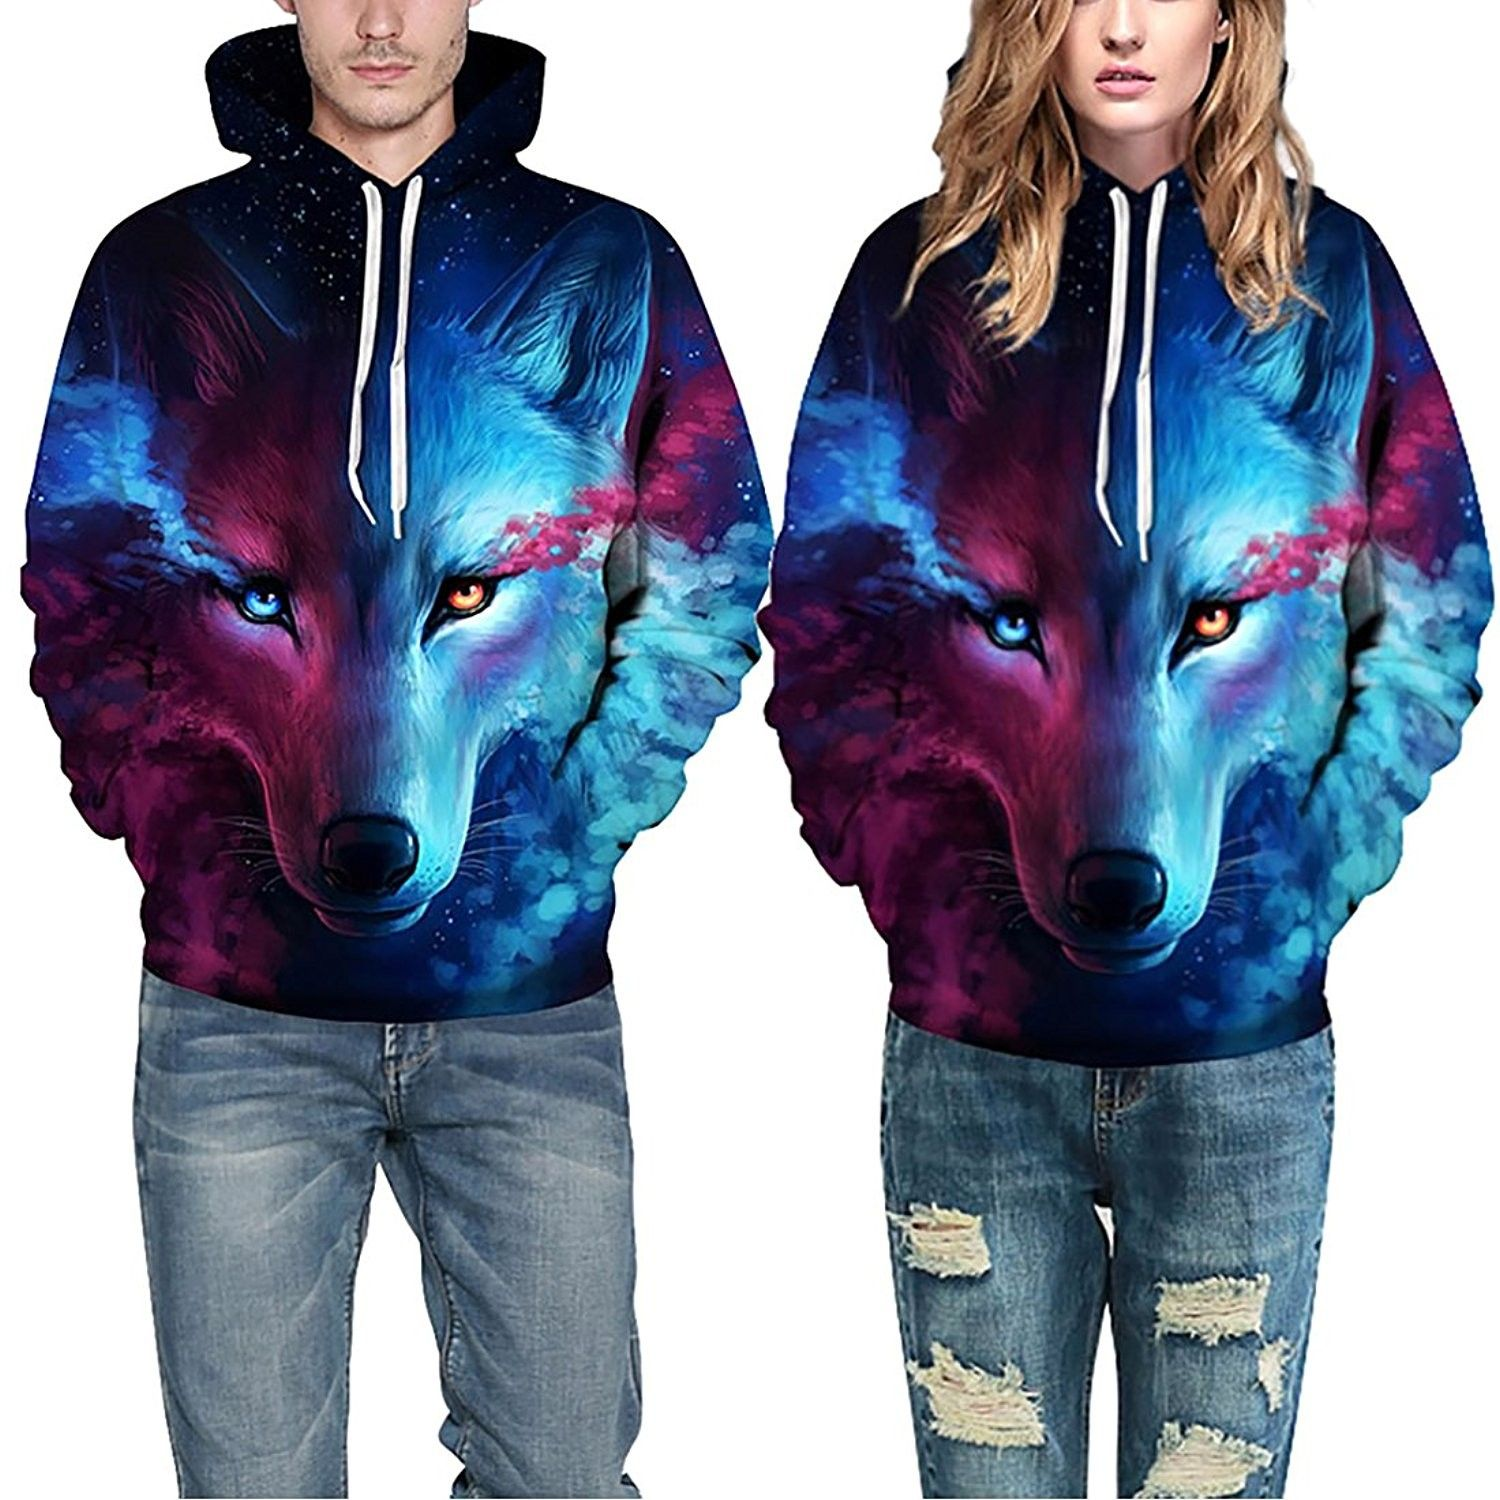 Couple Sweatshirts Hoodies 3D Womens Mens Hooded Pullover Sweater Unisex Casual